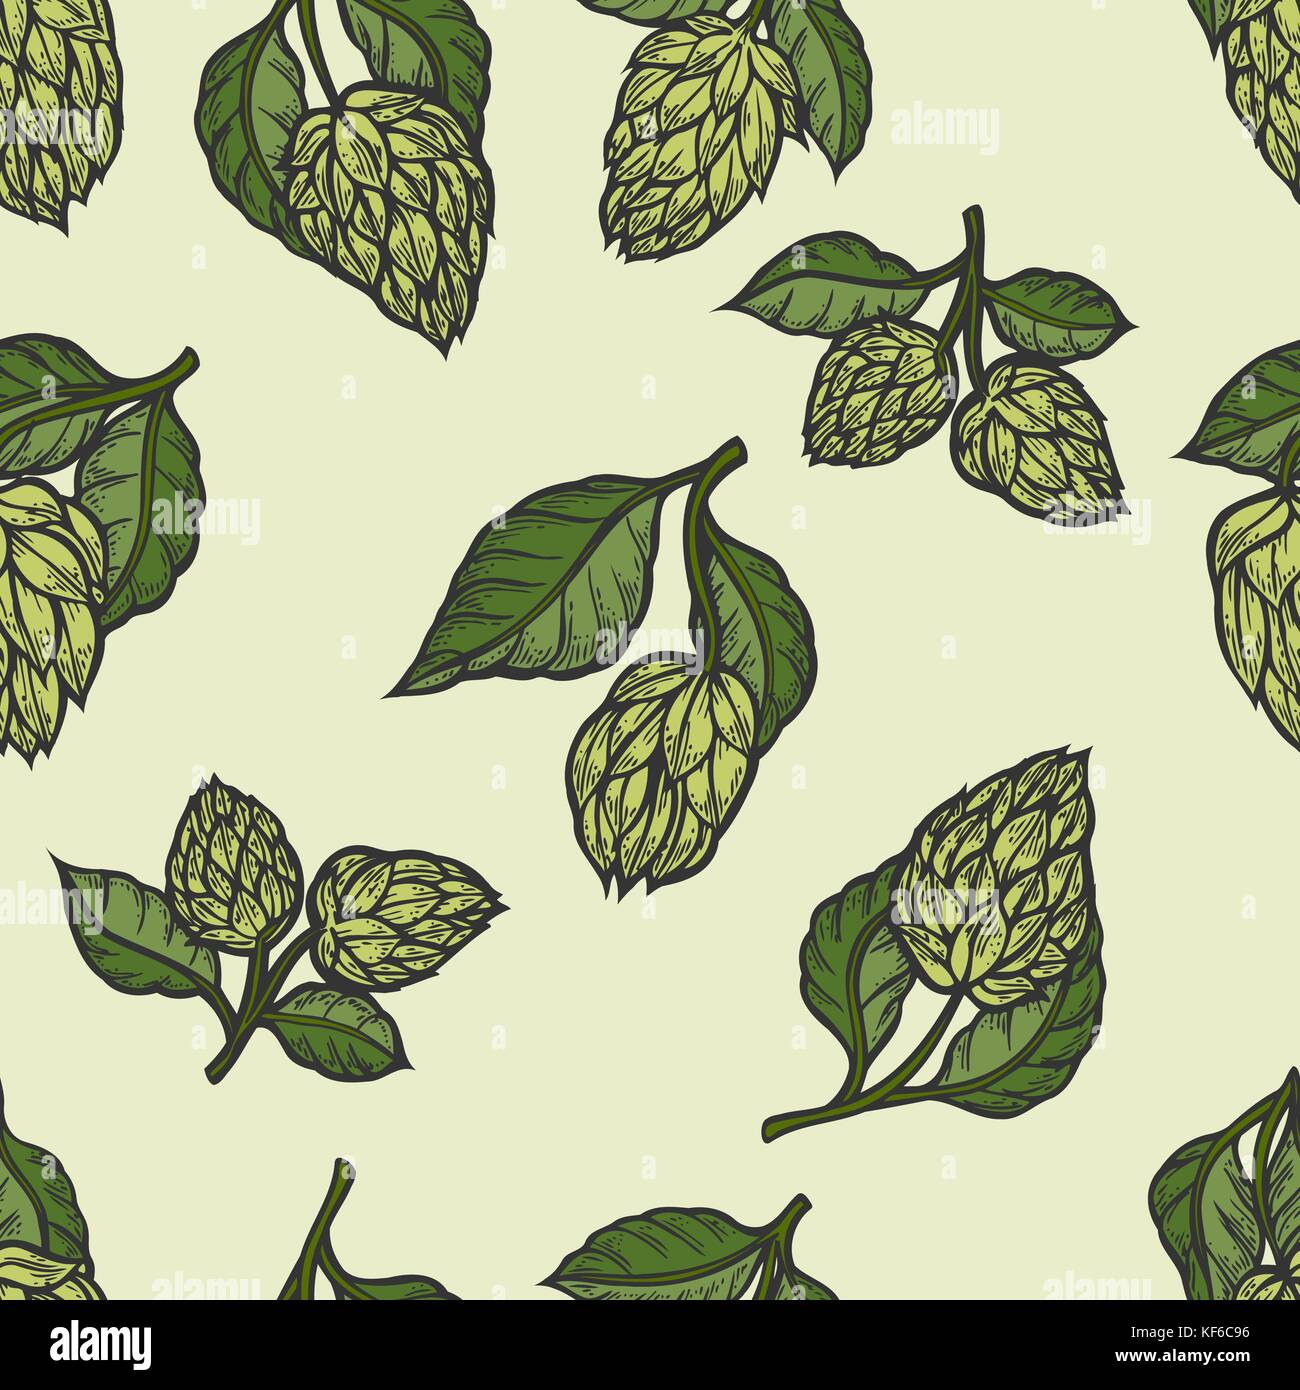 Hop Vector Seamless Pattern Hand Drawn Artistic Beer Green Hops